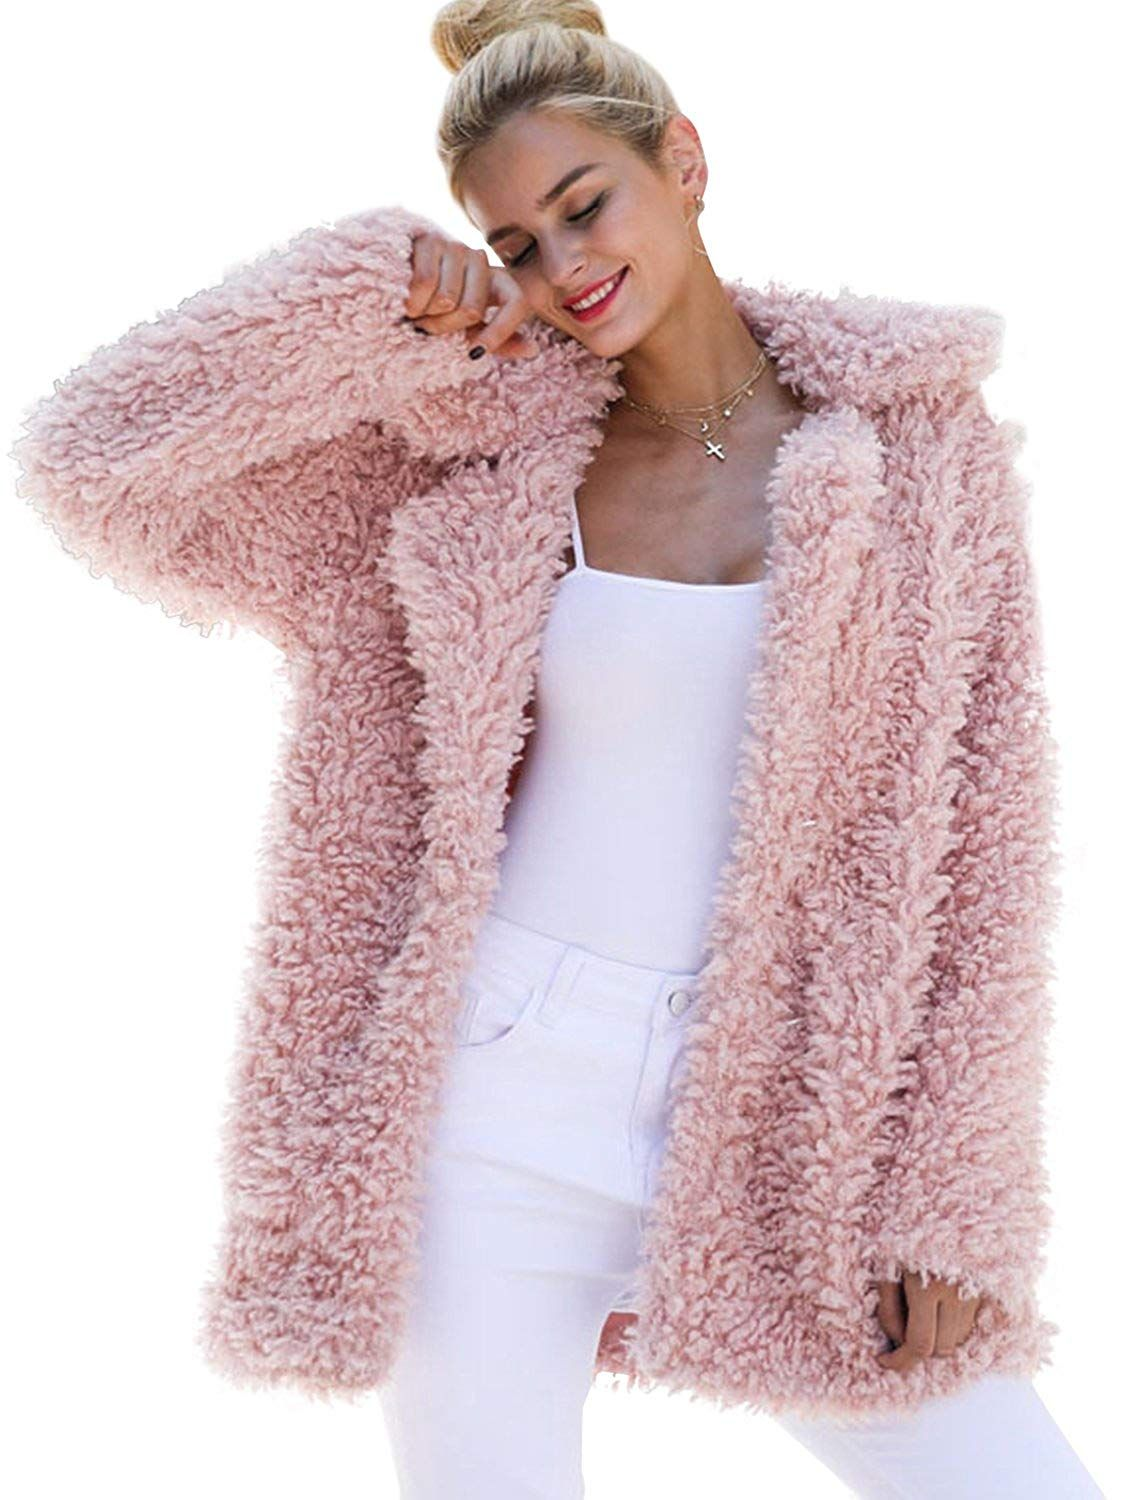 If You Re Looking For A Faux Fur Coat Outfit Then Check Out These Faux Fur Picks From Amazon Amazon C Long Faux Fur Coat Coats For Women Cold Weather Outfits [ 1500 x 1125 Pixel ]